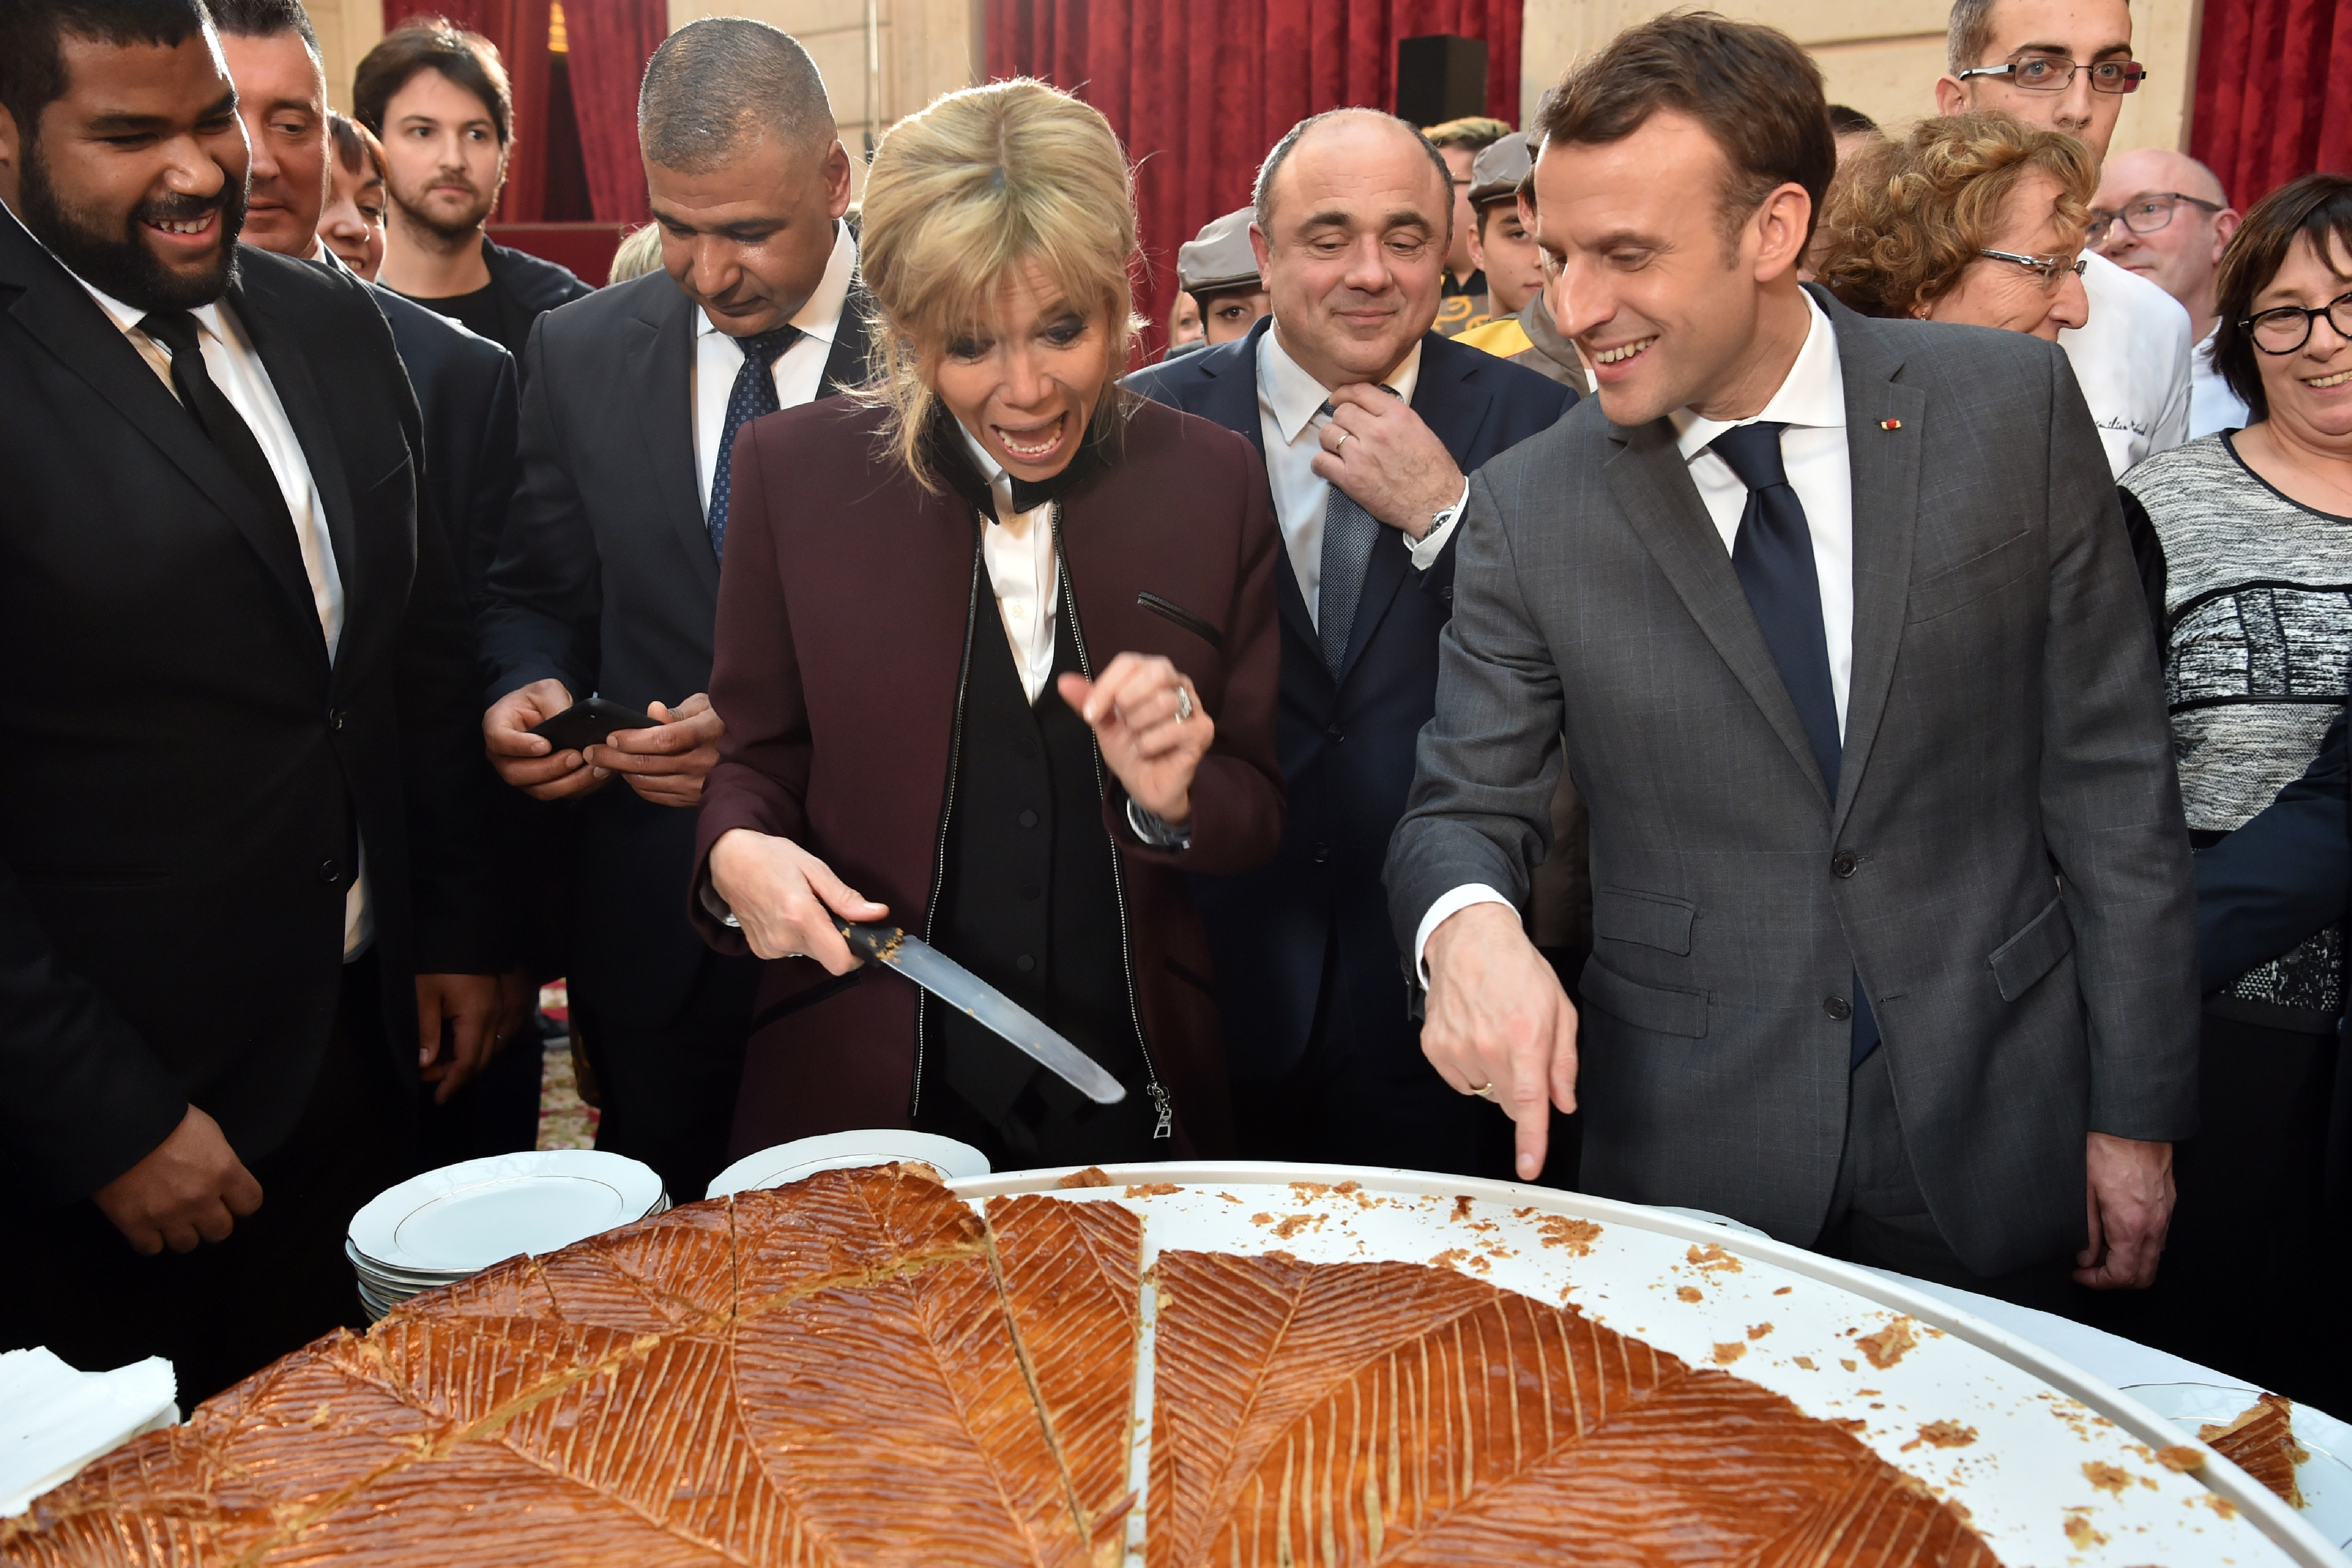 Brigitte Biography Says Young Macron Wrote Steamy Book About Their Romance Voice Of America English